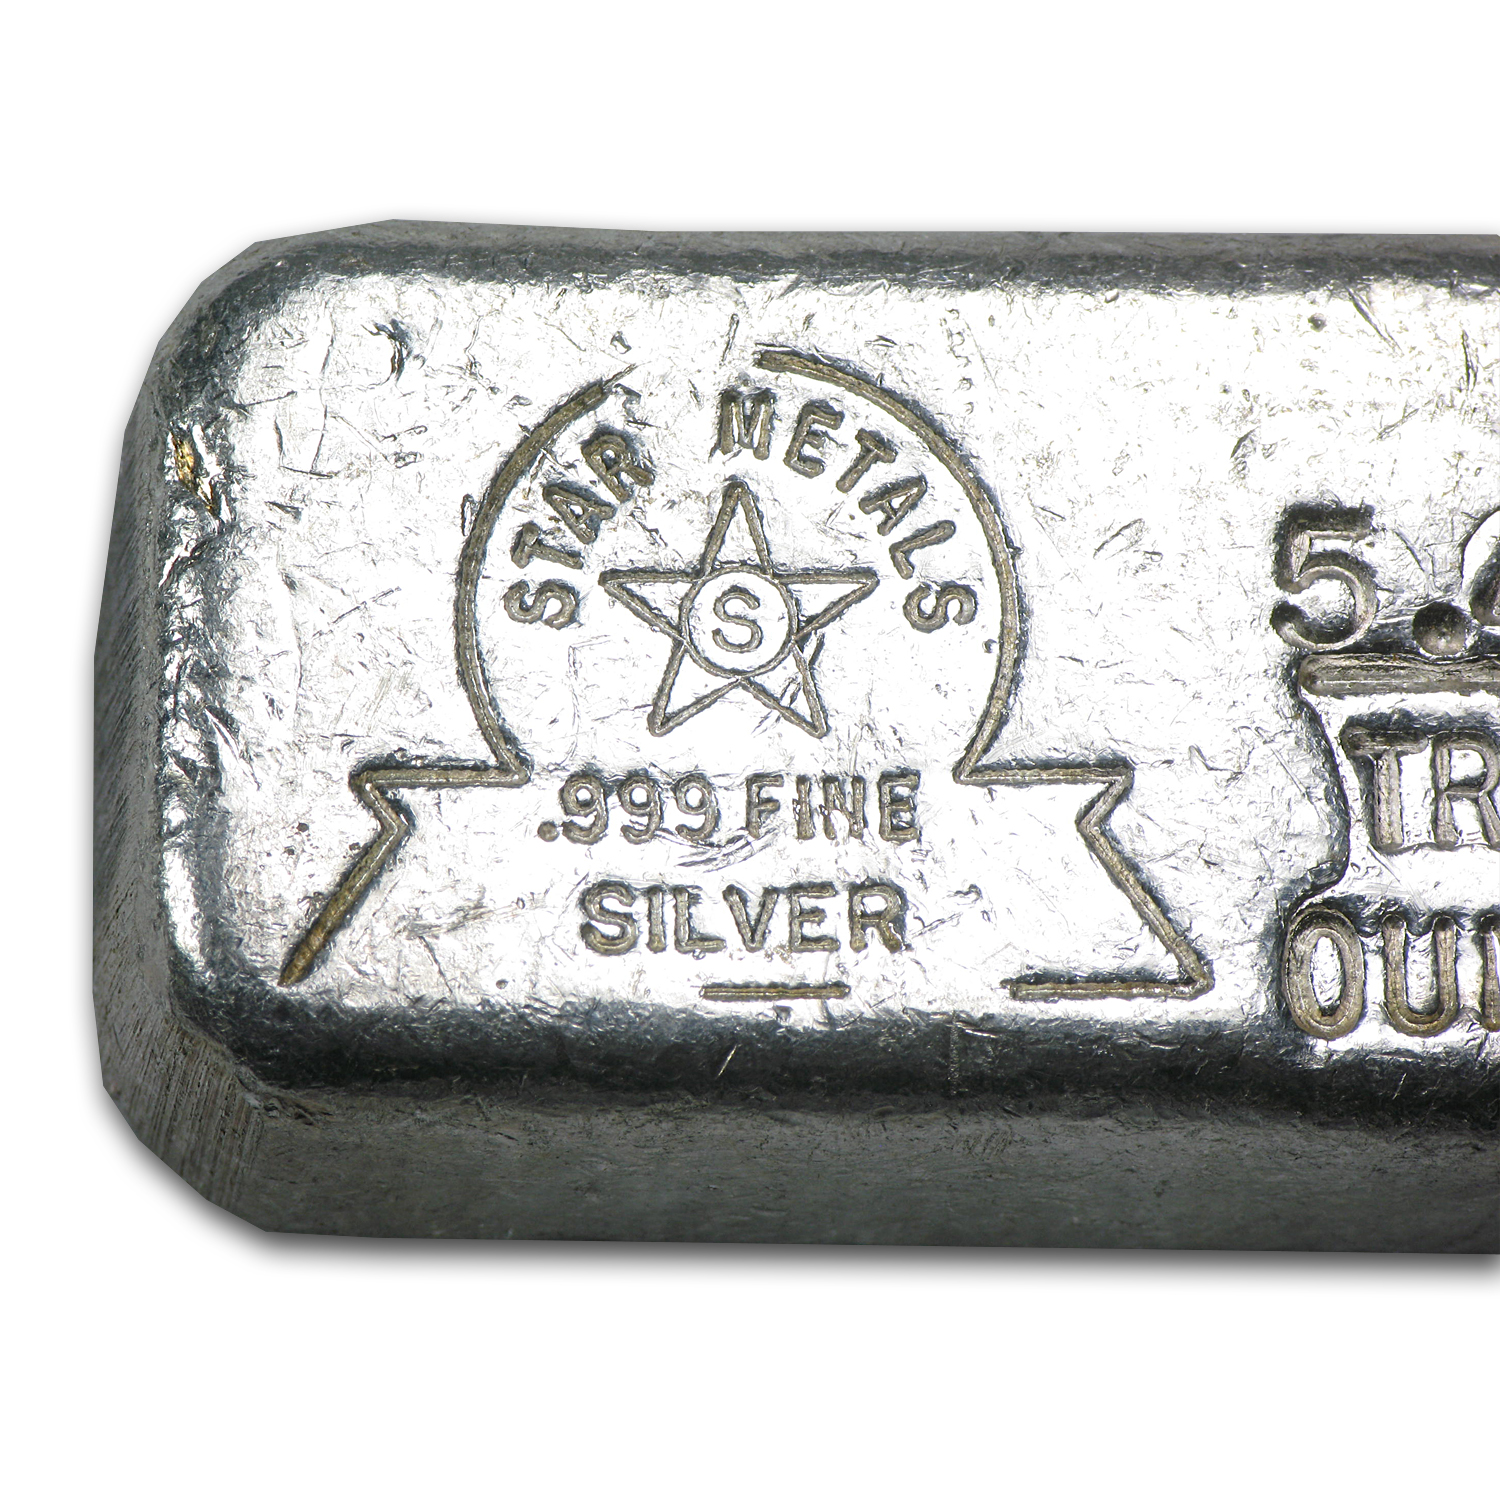 5.45 oz Silver Bars - Star Metals